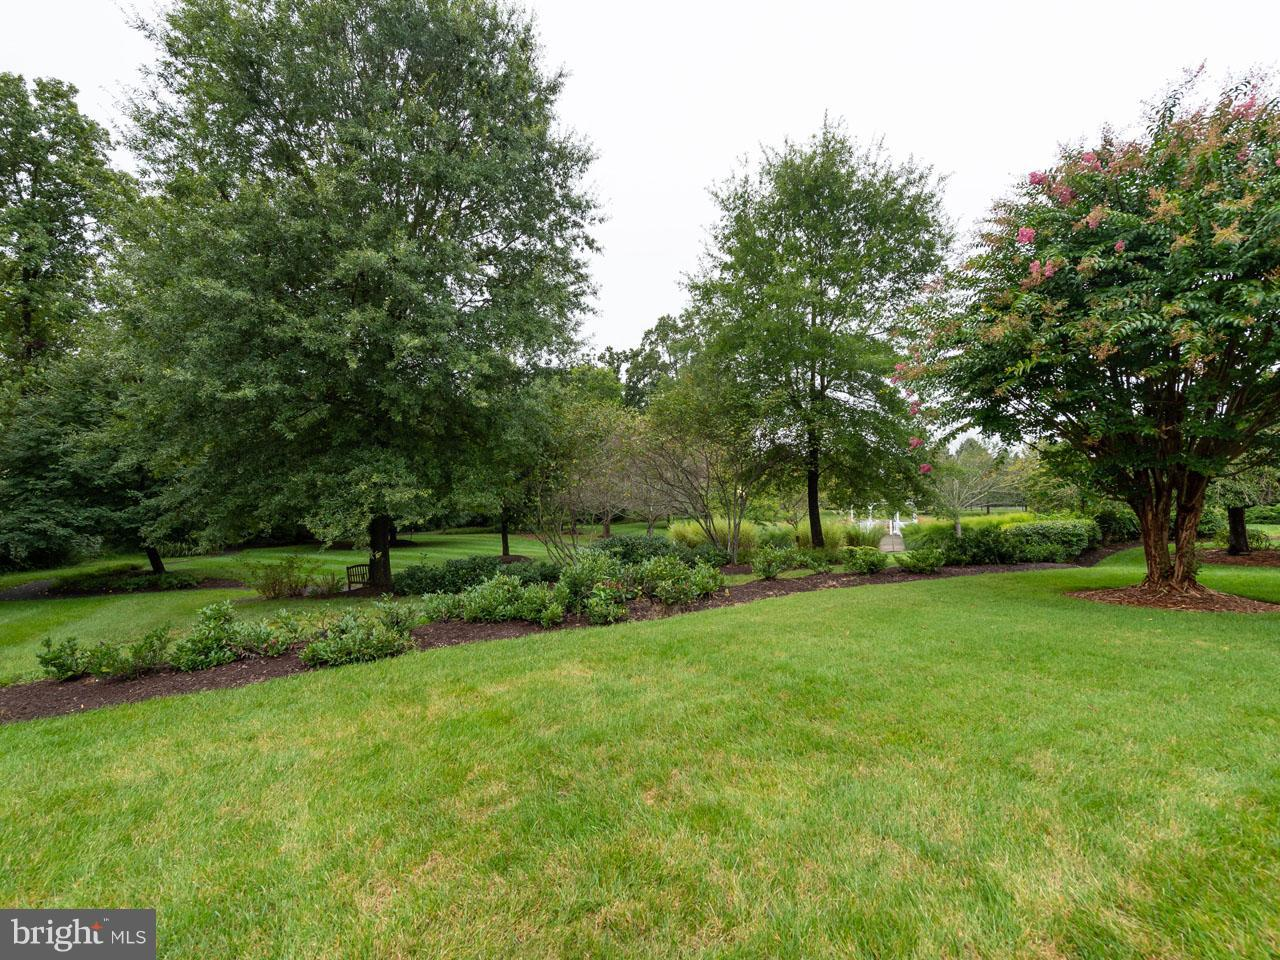 1005040466-300638085134-2021-07-22-06-45-08        Gainesville Delaware Real Estate For Sale   MLS# 1005040466  - Best of Northern Virginia